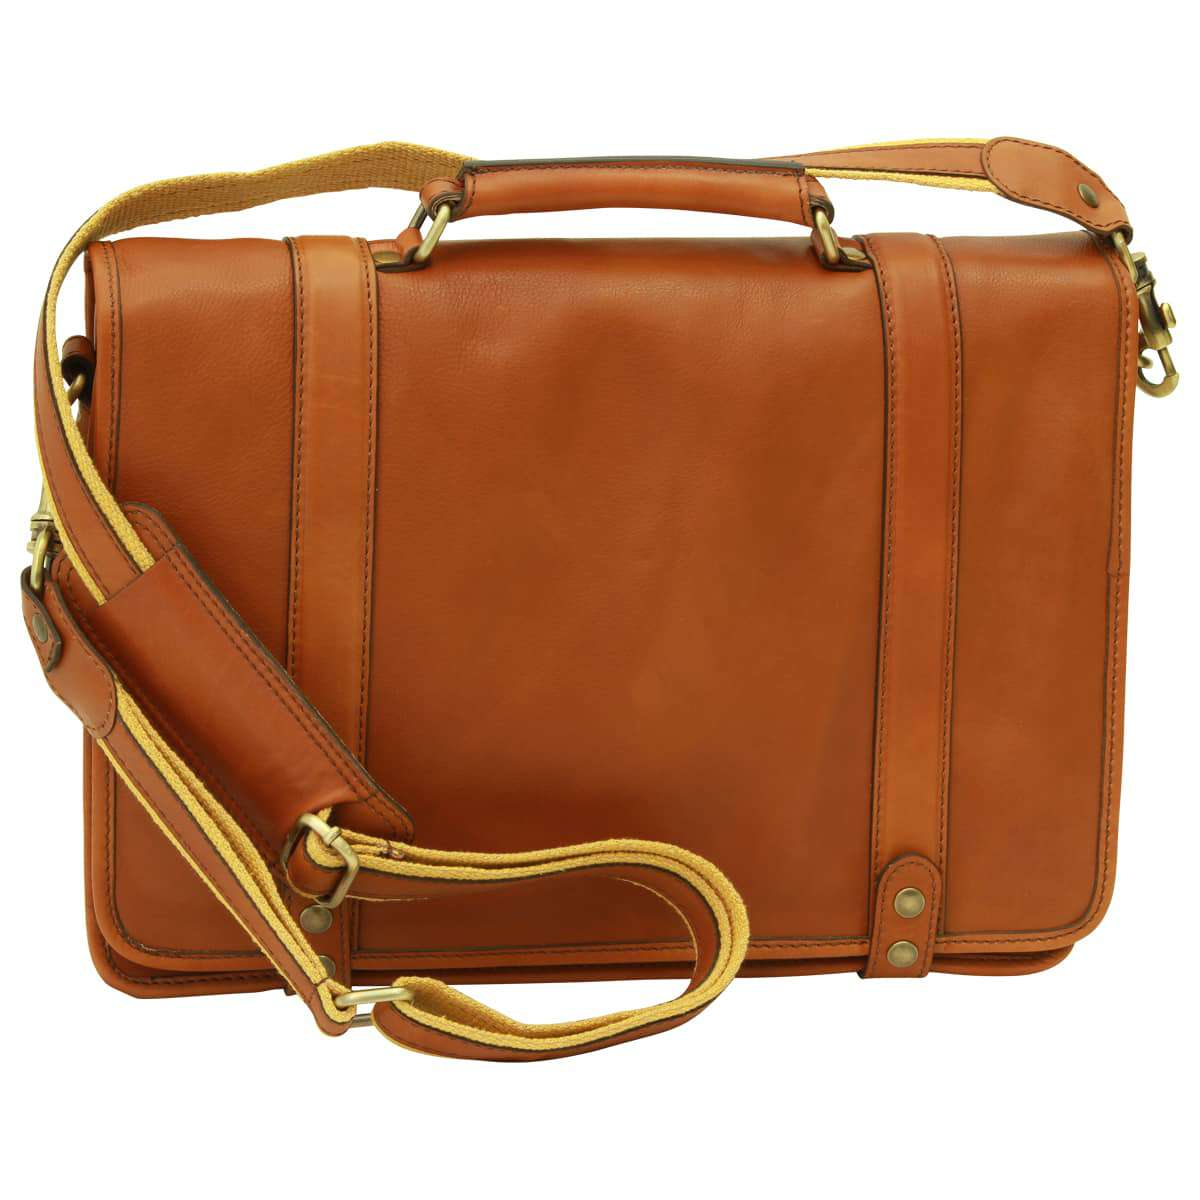 Calfskin Nappa leather briefcase - Gold | 031591CO UK | Old Angler Firenze